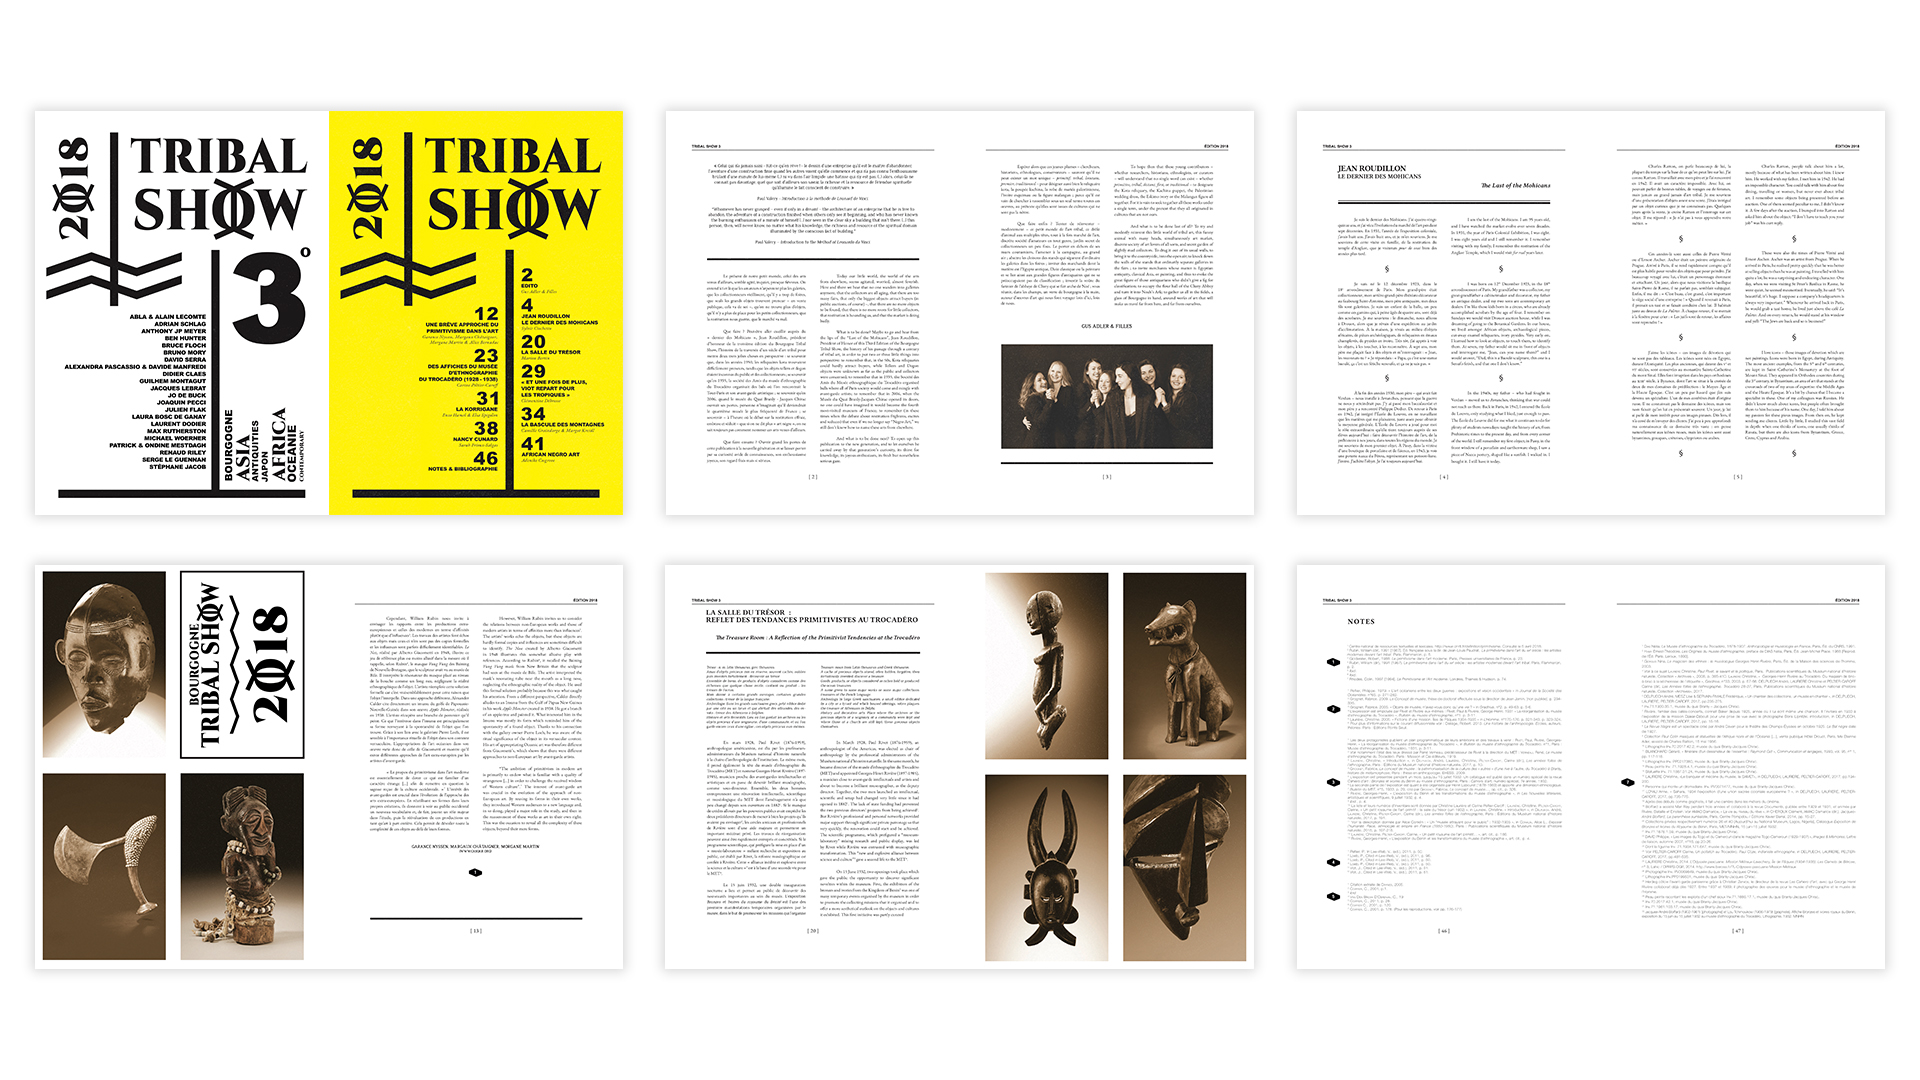 TRIBALSHOW2018_CATALOGUE1